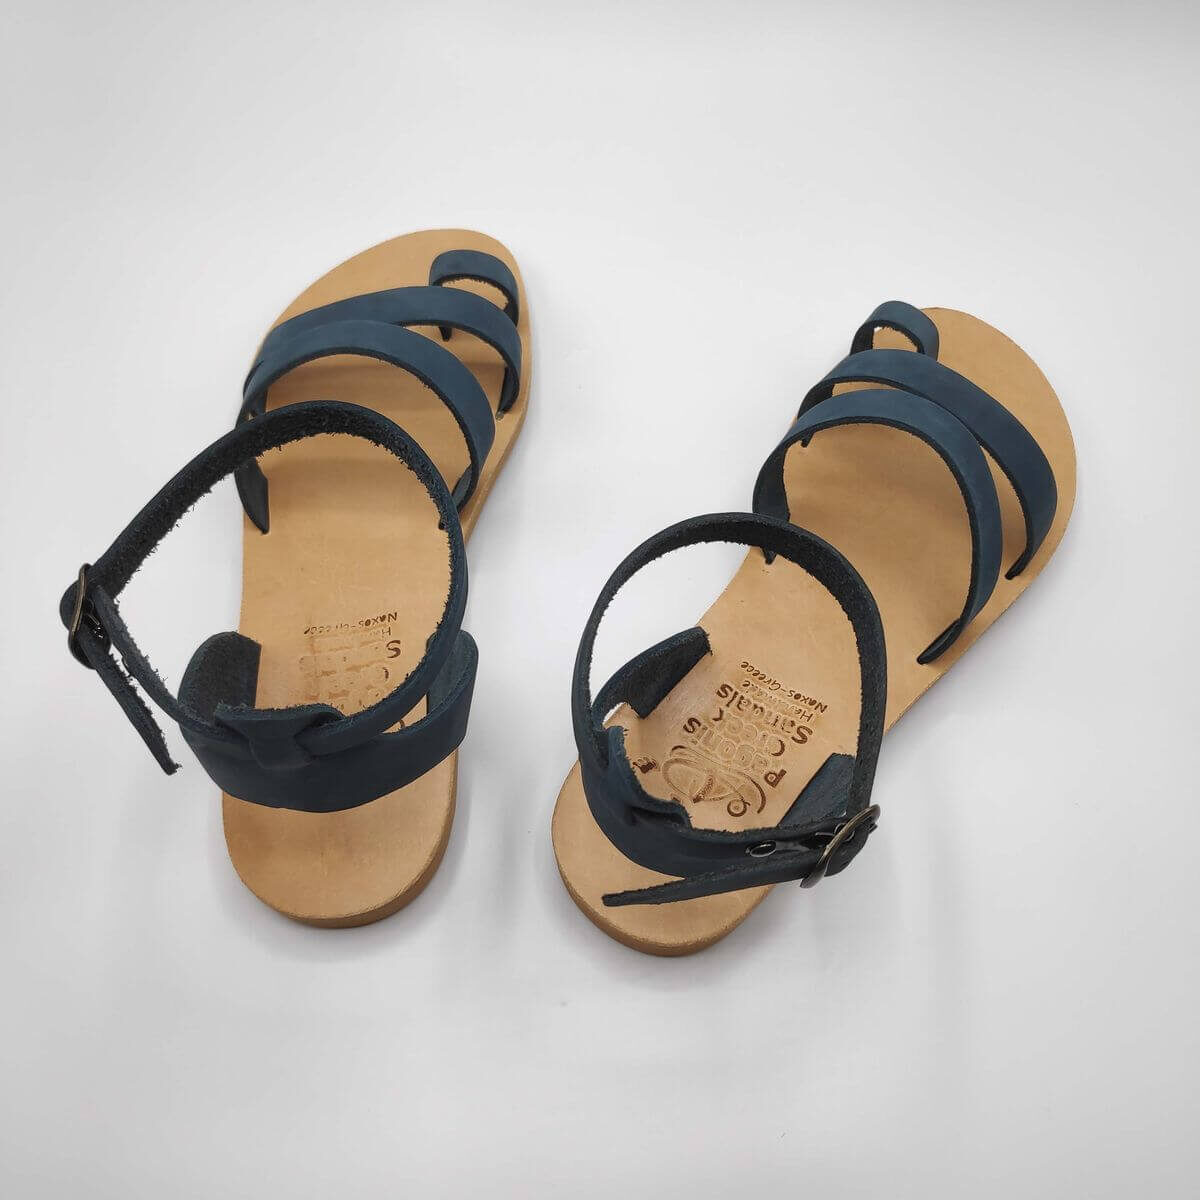 blue nubuck leather dressy sandals with two straps, toe ring and high ankle strap, back view